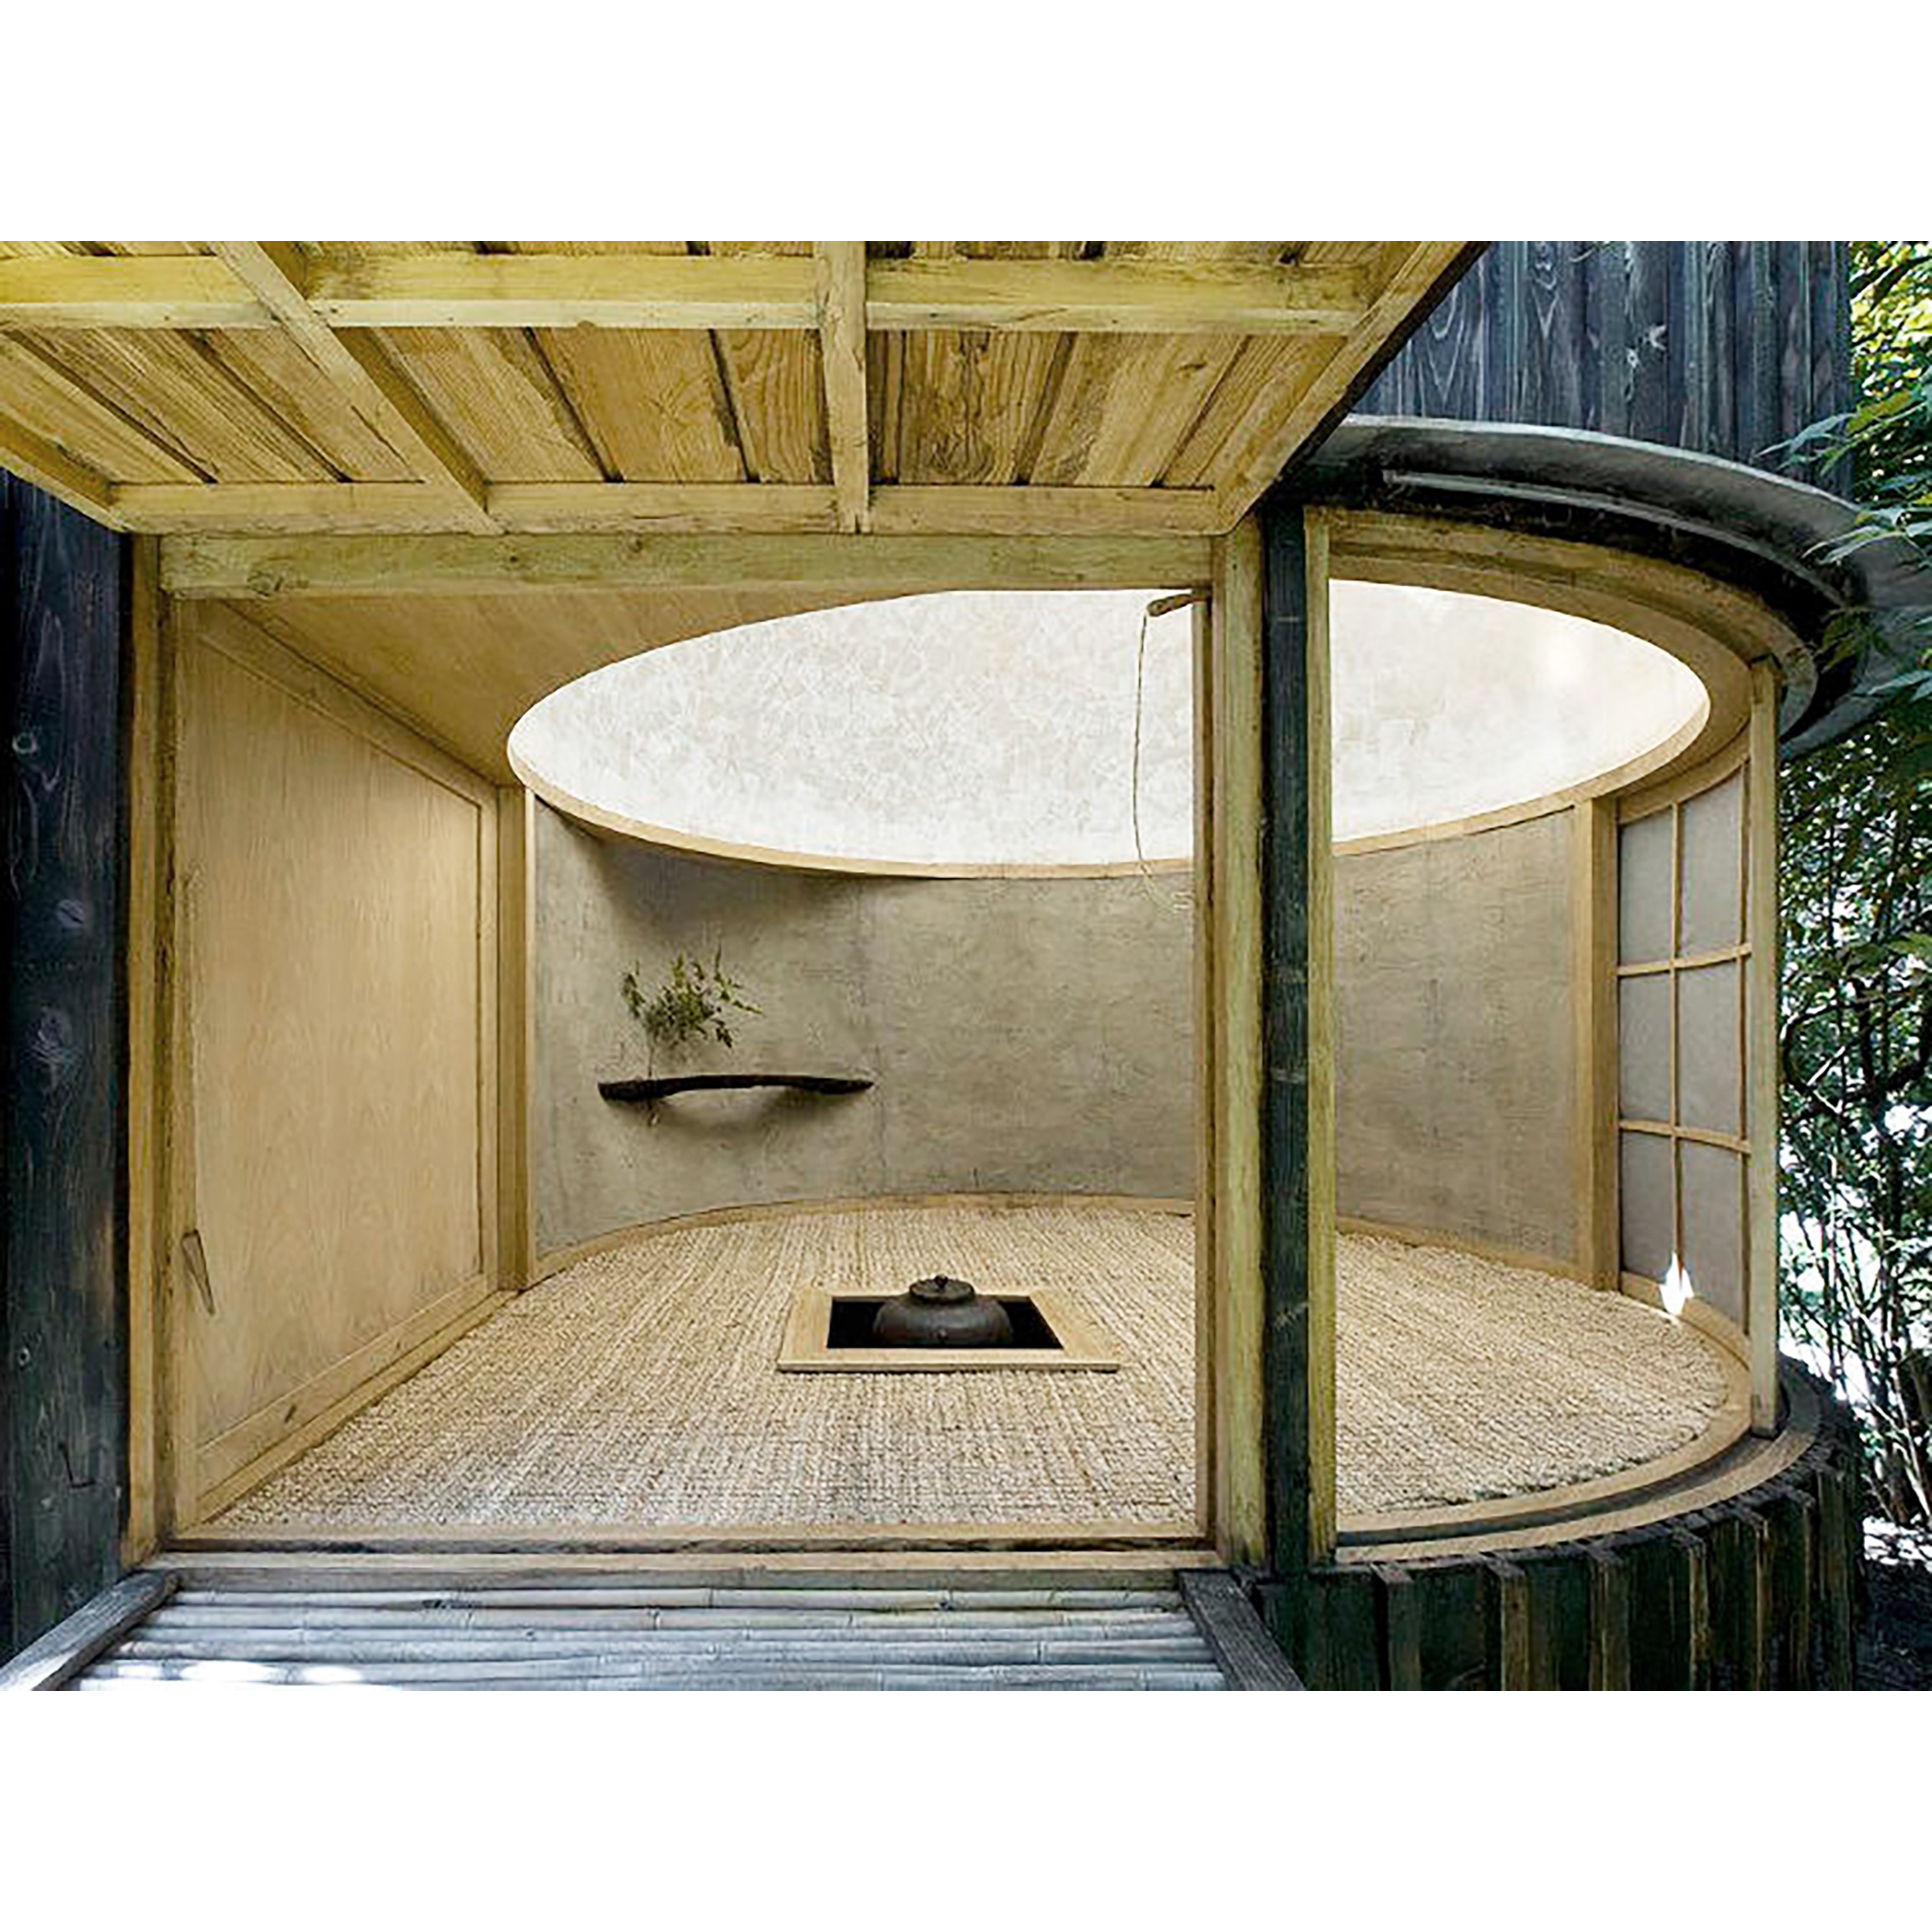 Praha Garden Tea House_ A1 Architects.jpg